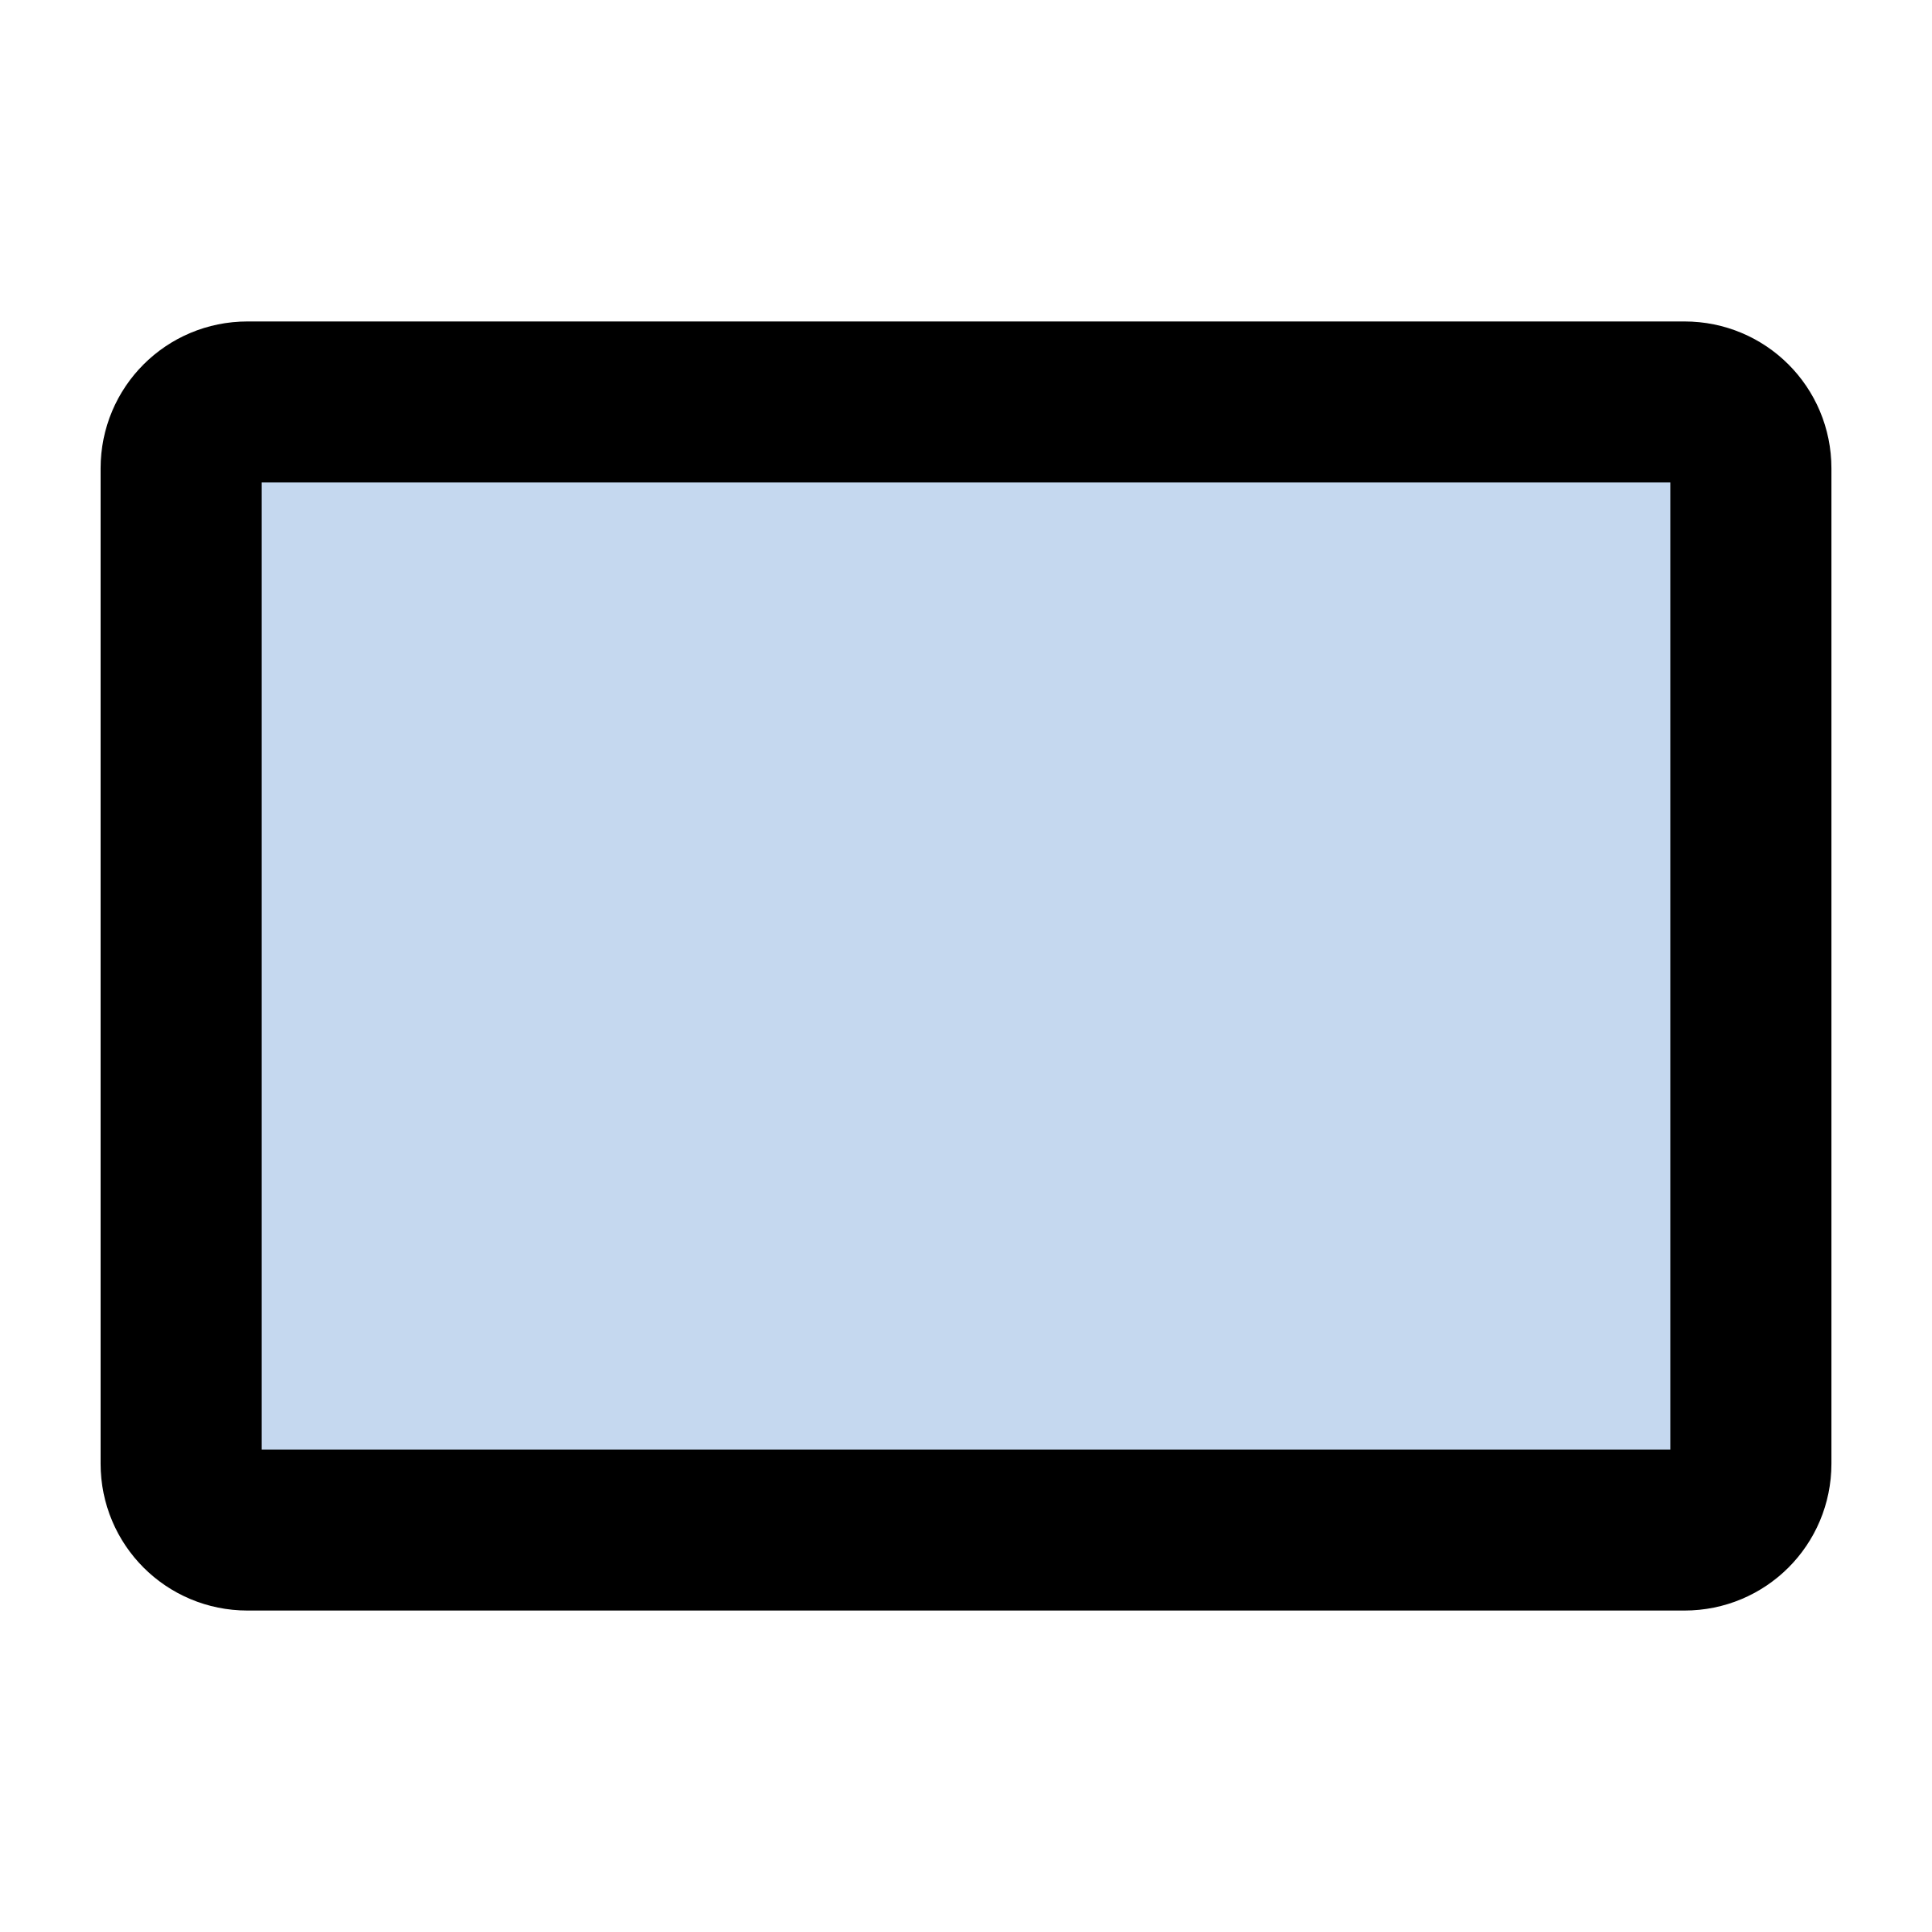 Freeware clipart for commercial use image transparent library primary tool rectangle Icons PNG - Free PNG and Icons Downloads image transparent library